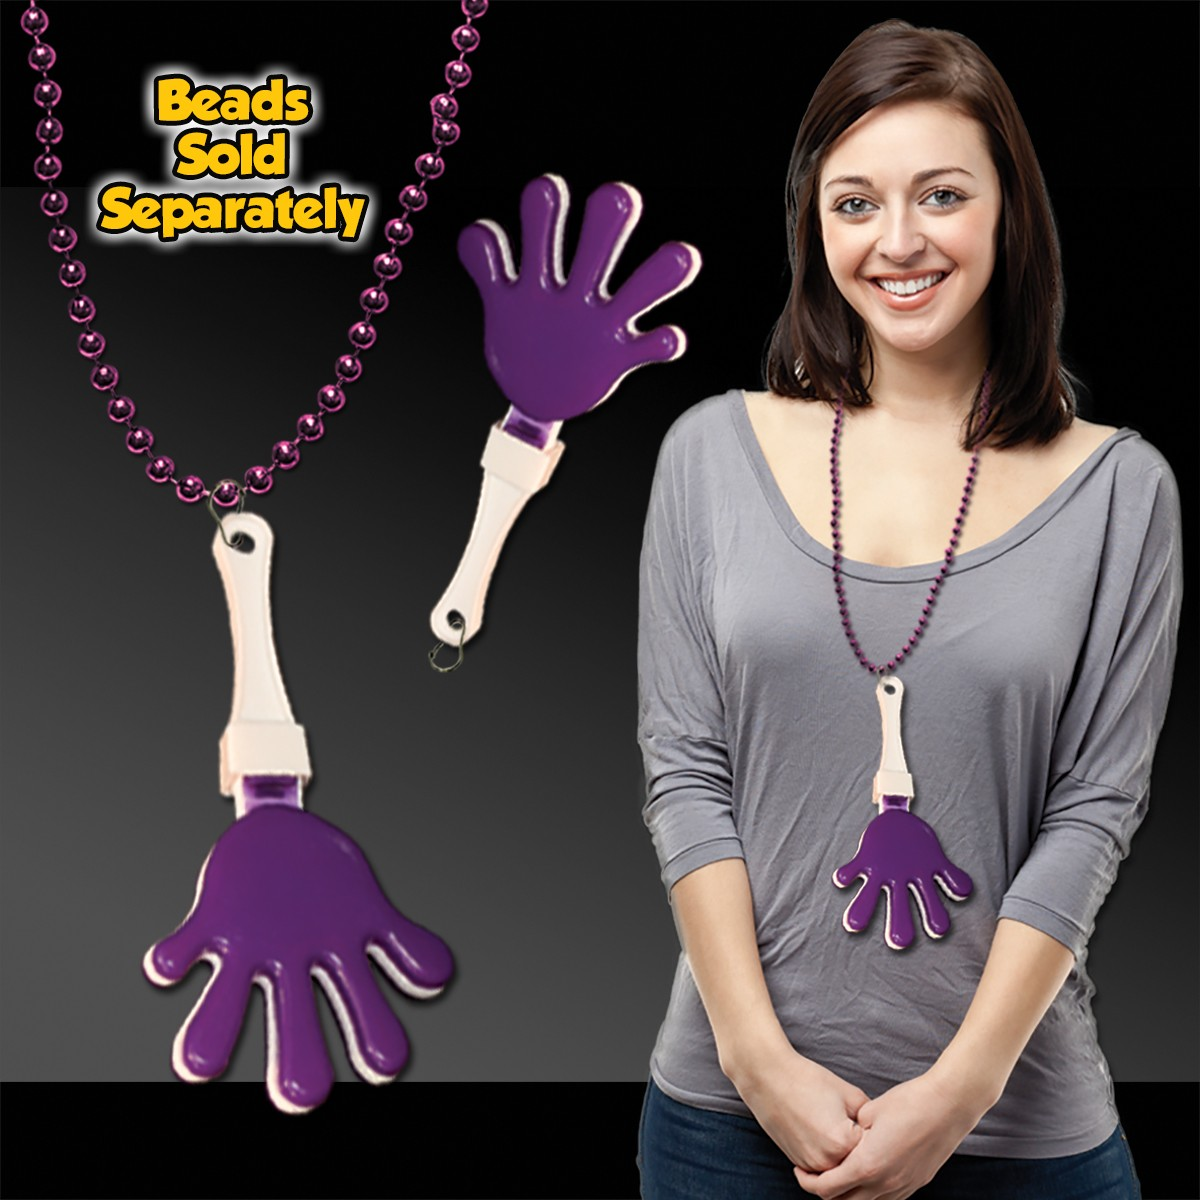 PURPLEWHTPURPLE HANDCLAPPER